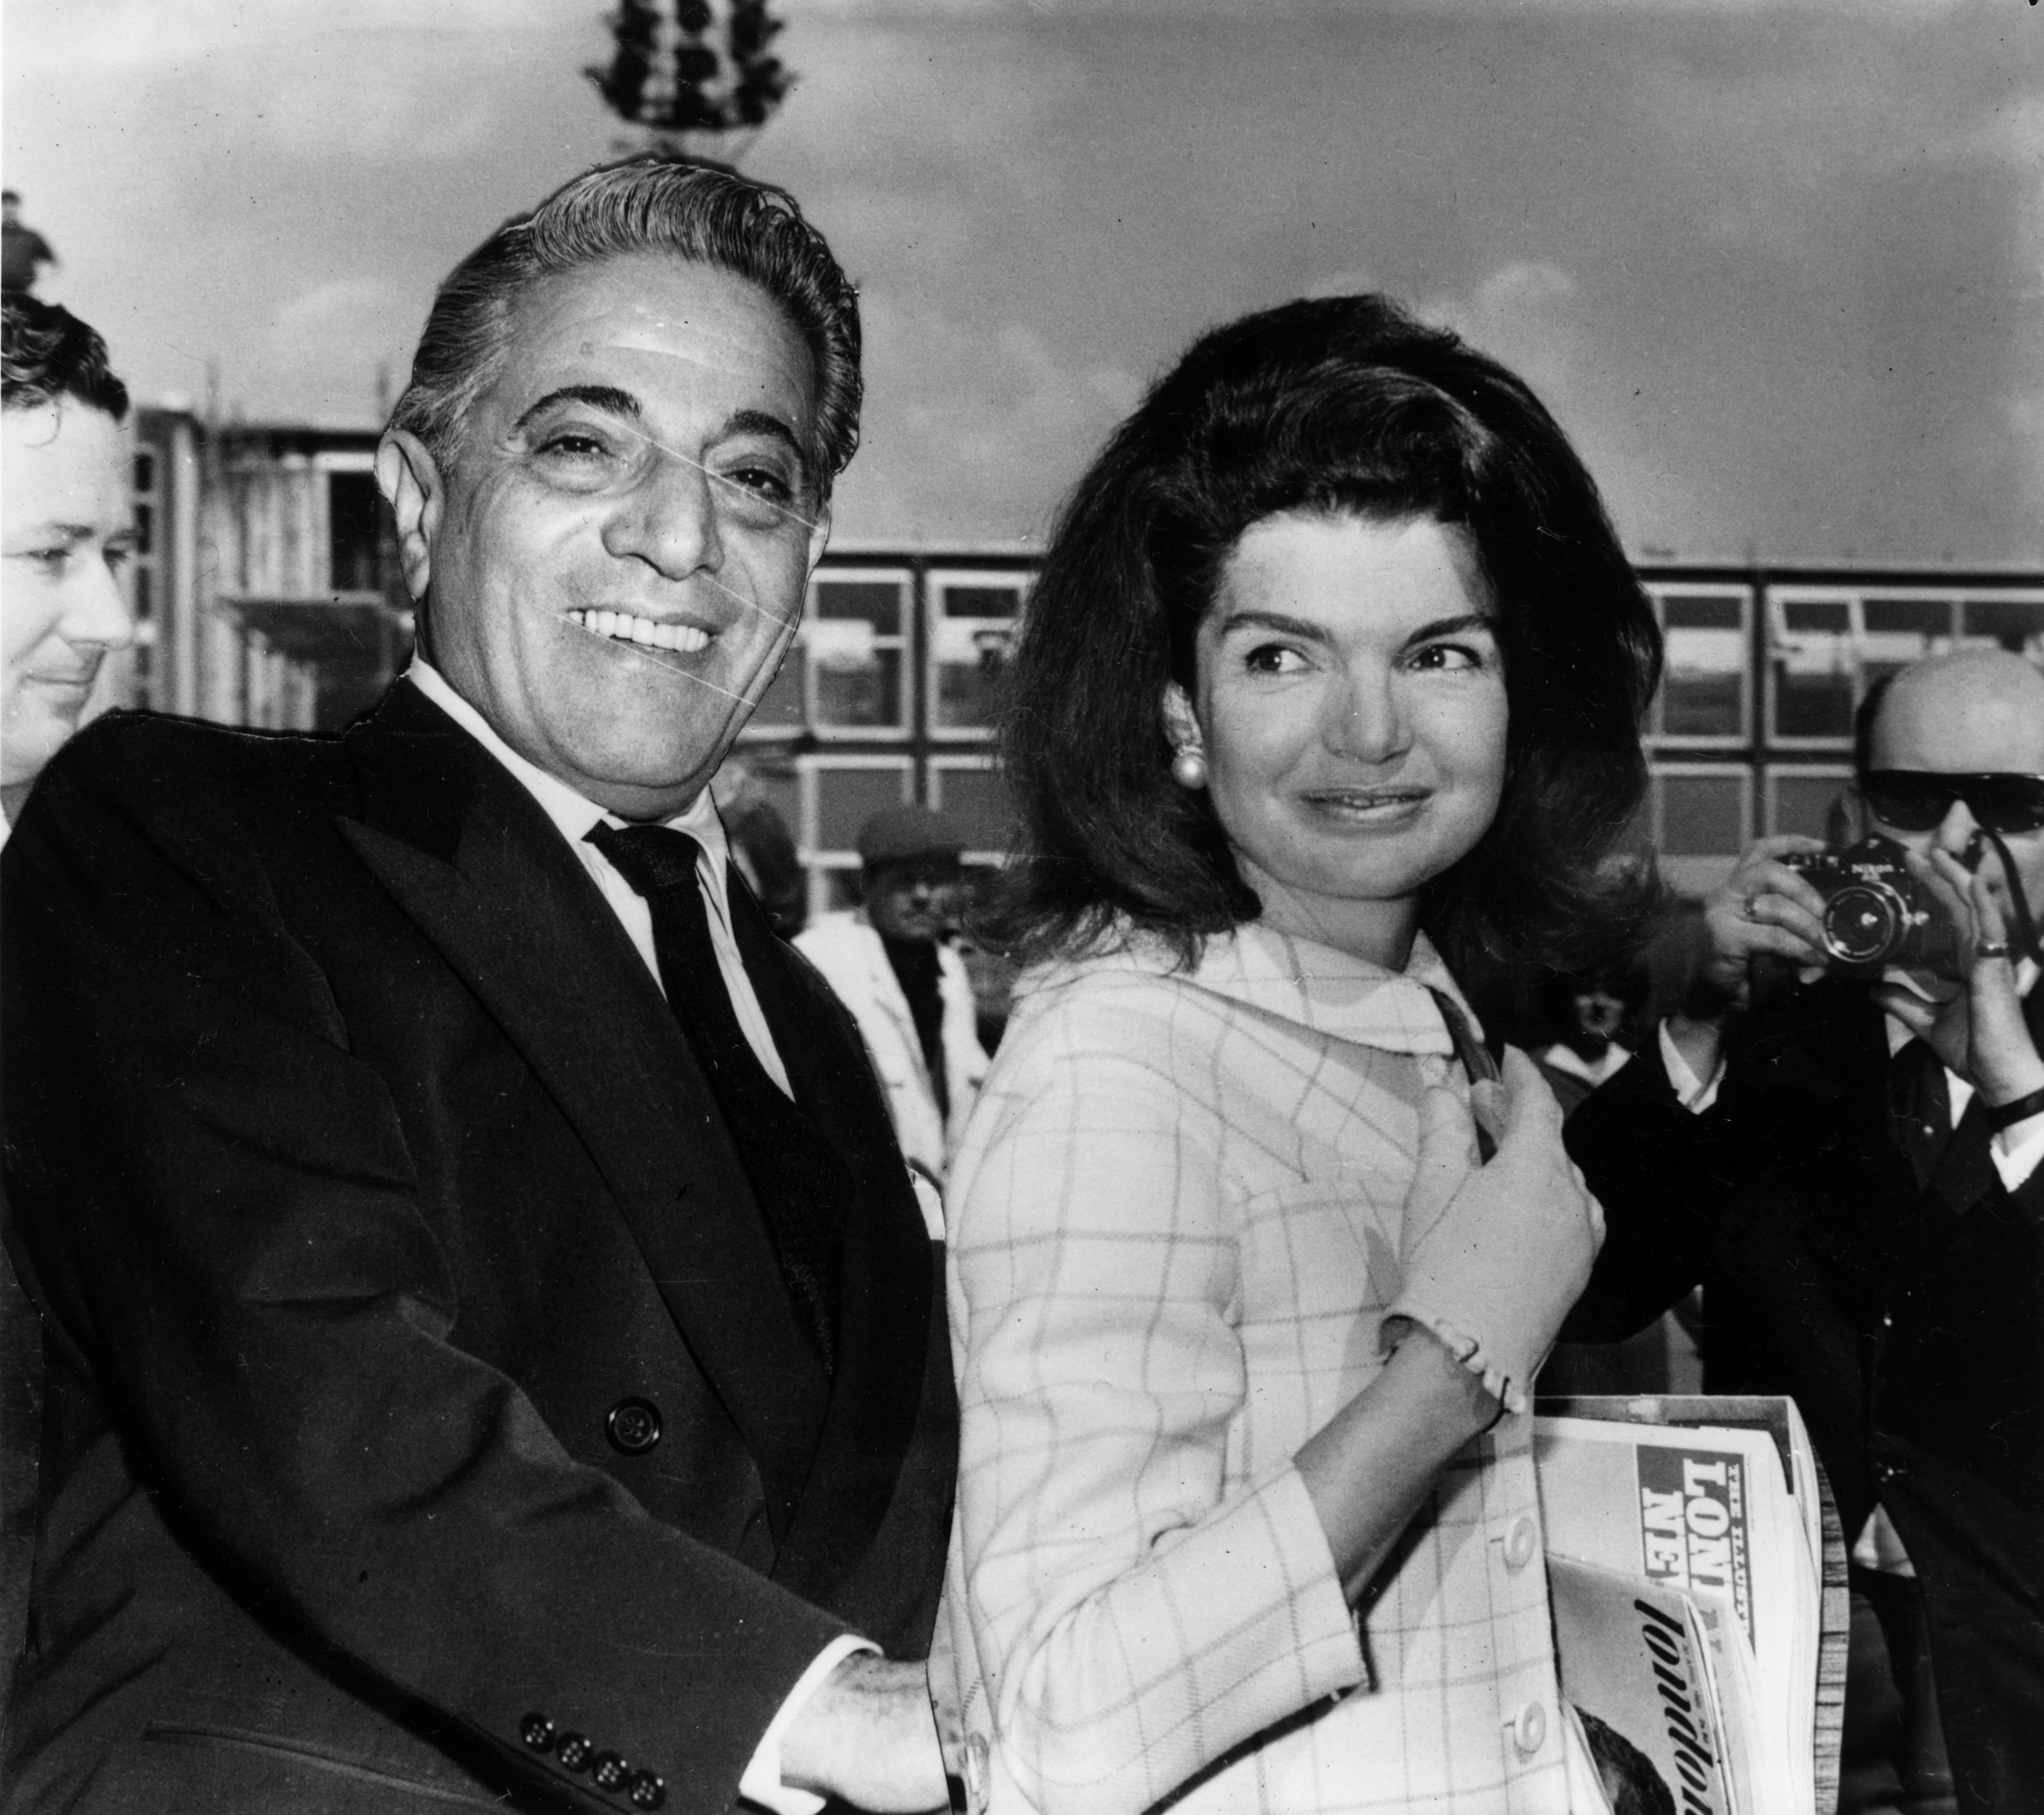 Millionaire shipping magnate Aristotle Onassis with his wife Jackie Kennedy Onassis on October 18, 1968 | Photo: Central Press/Getty Images